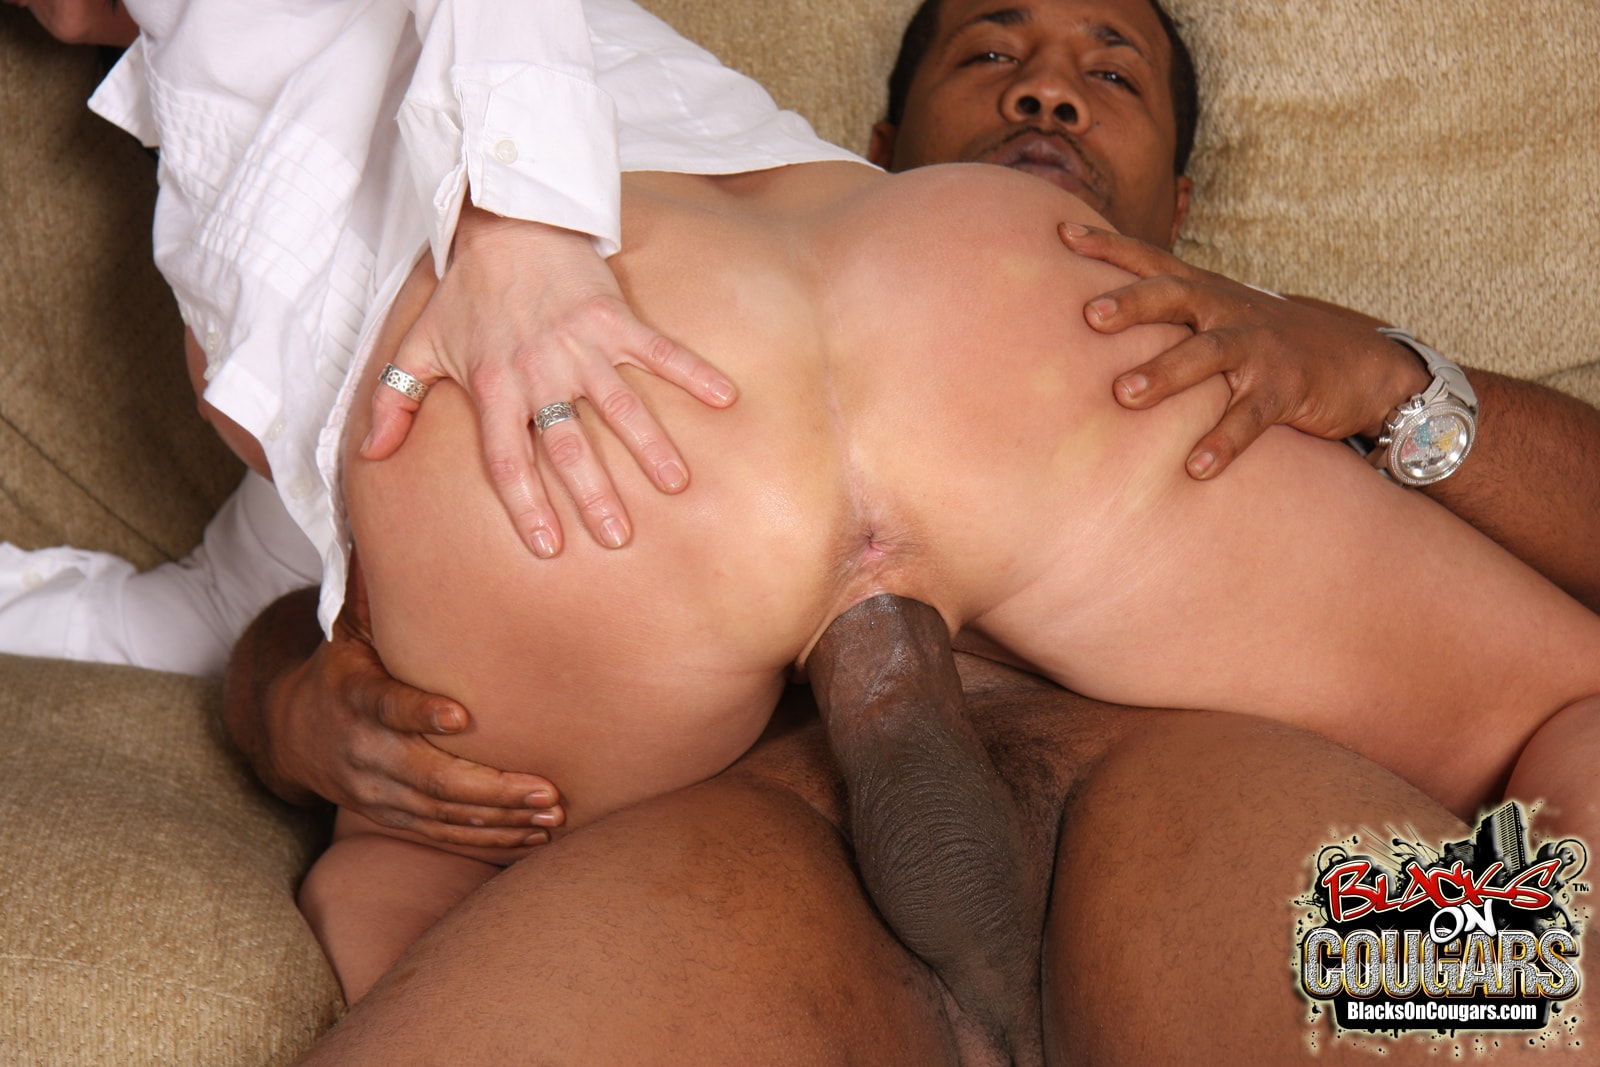 Dogfart '- Blacks On Cougars' starring Harley Raines (Photo 26)